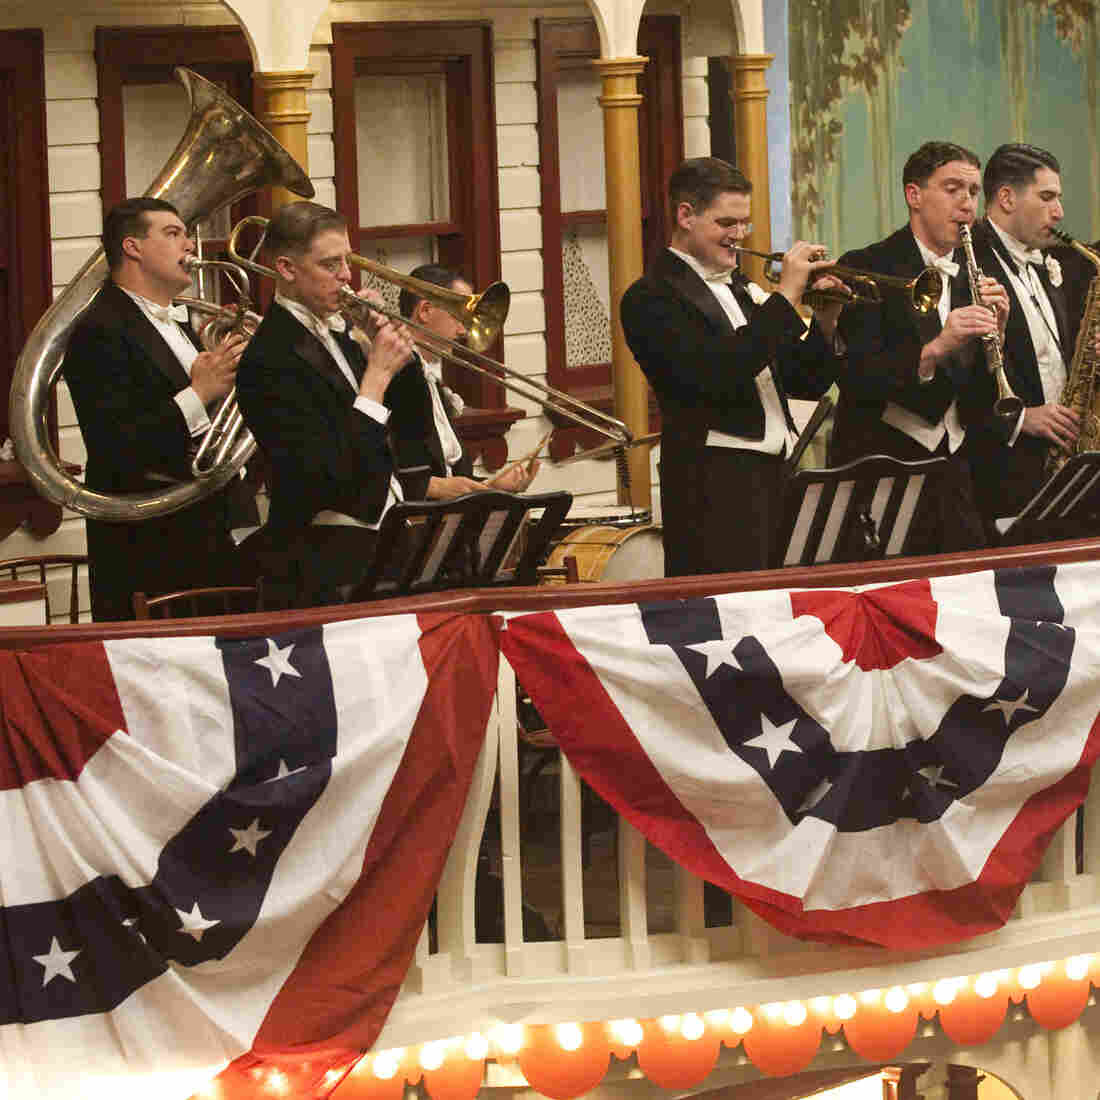 The Man Behind The 'Boardwalk Empire' Big Band